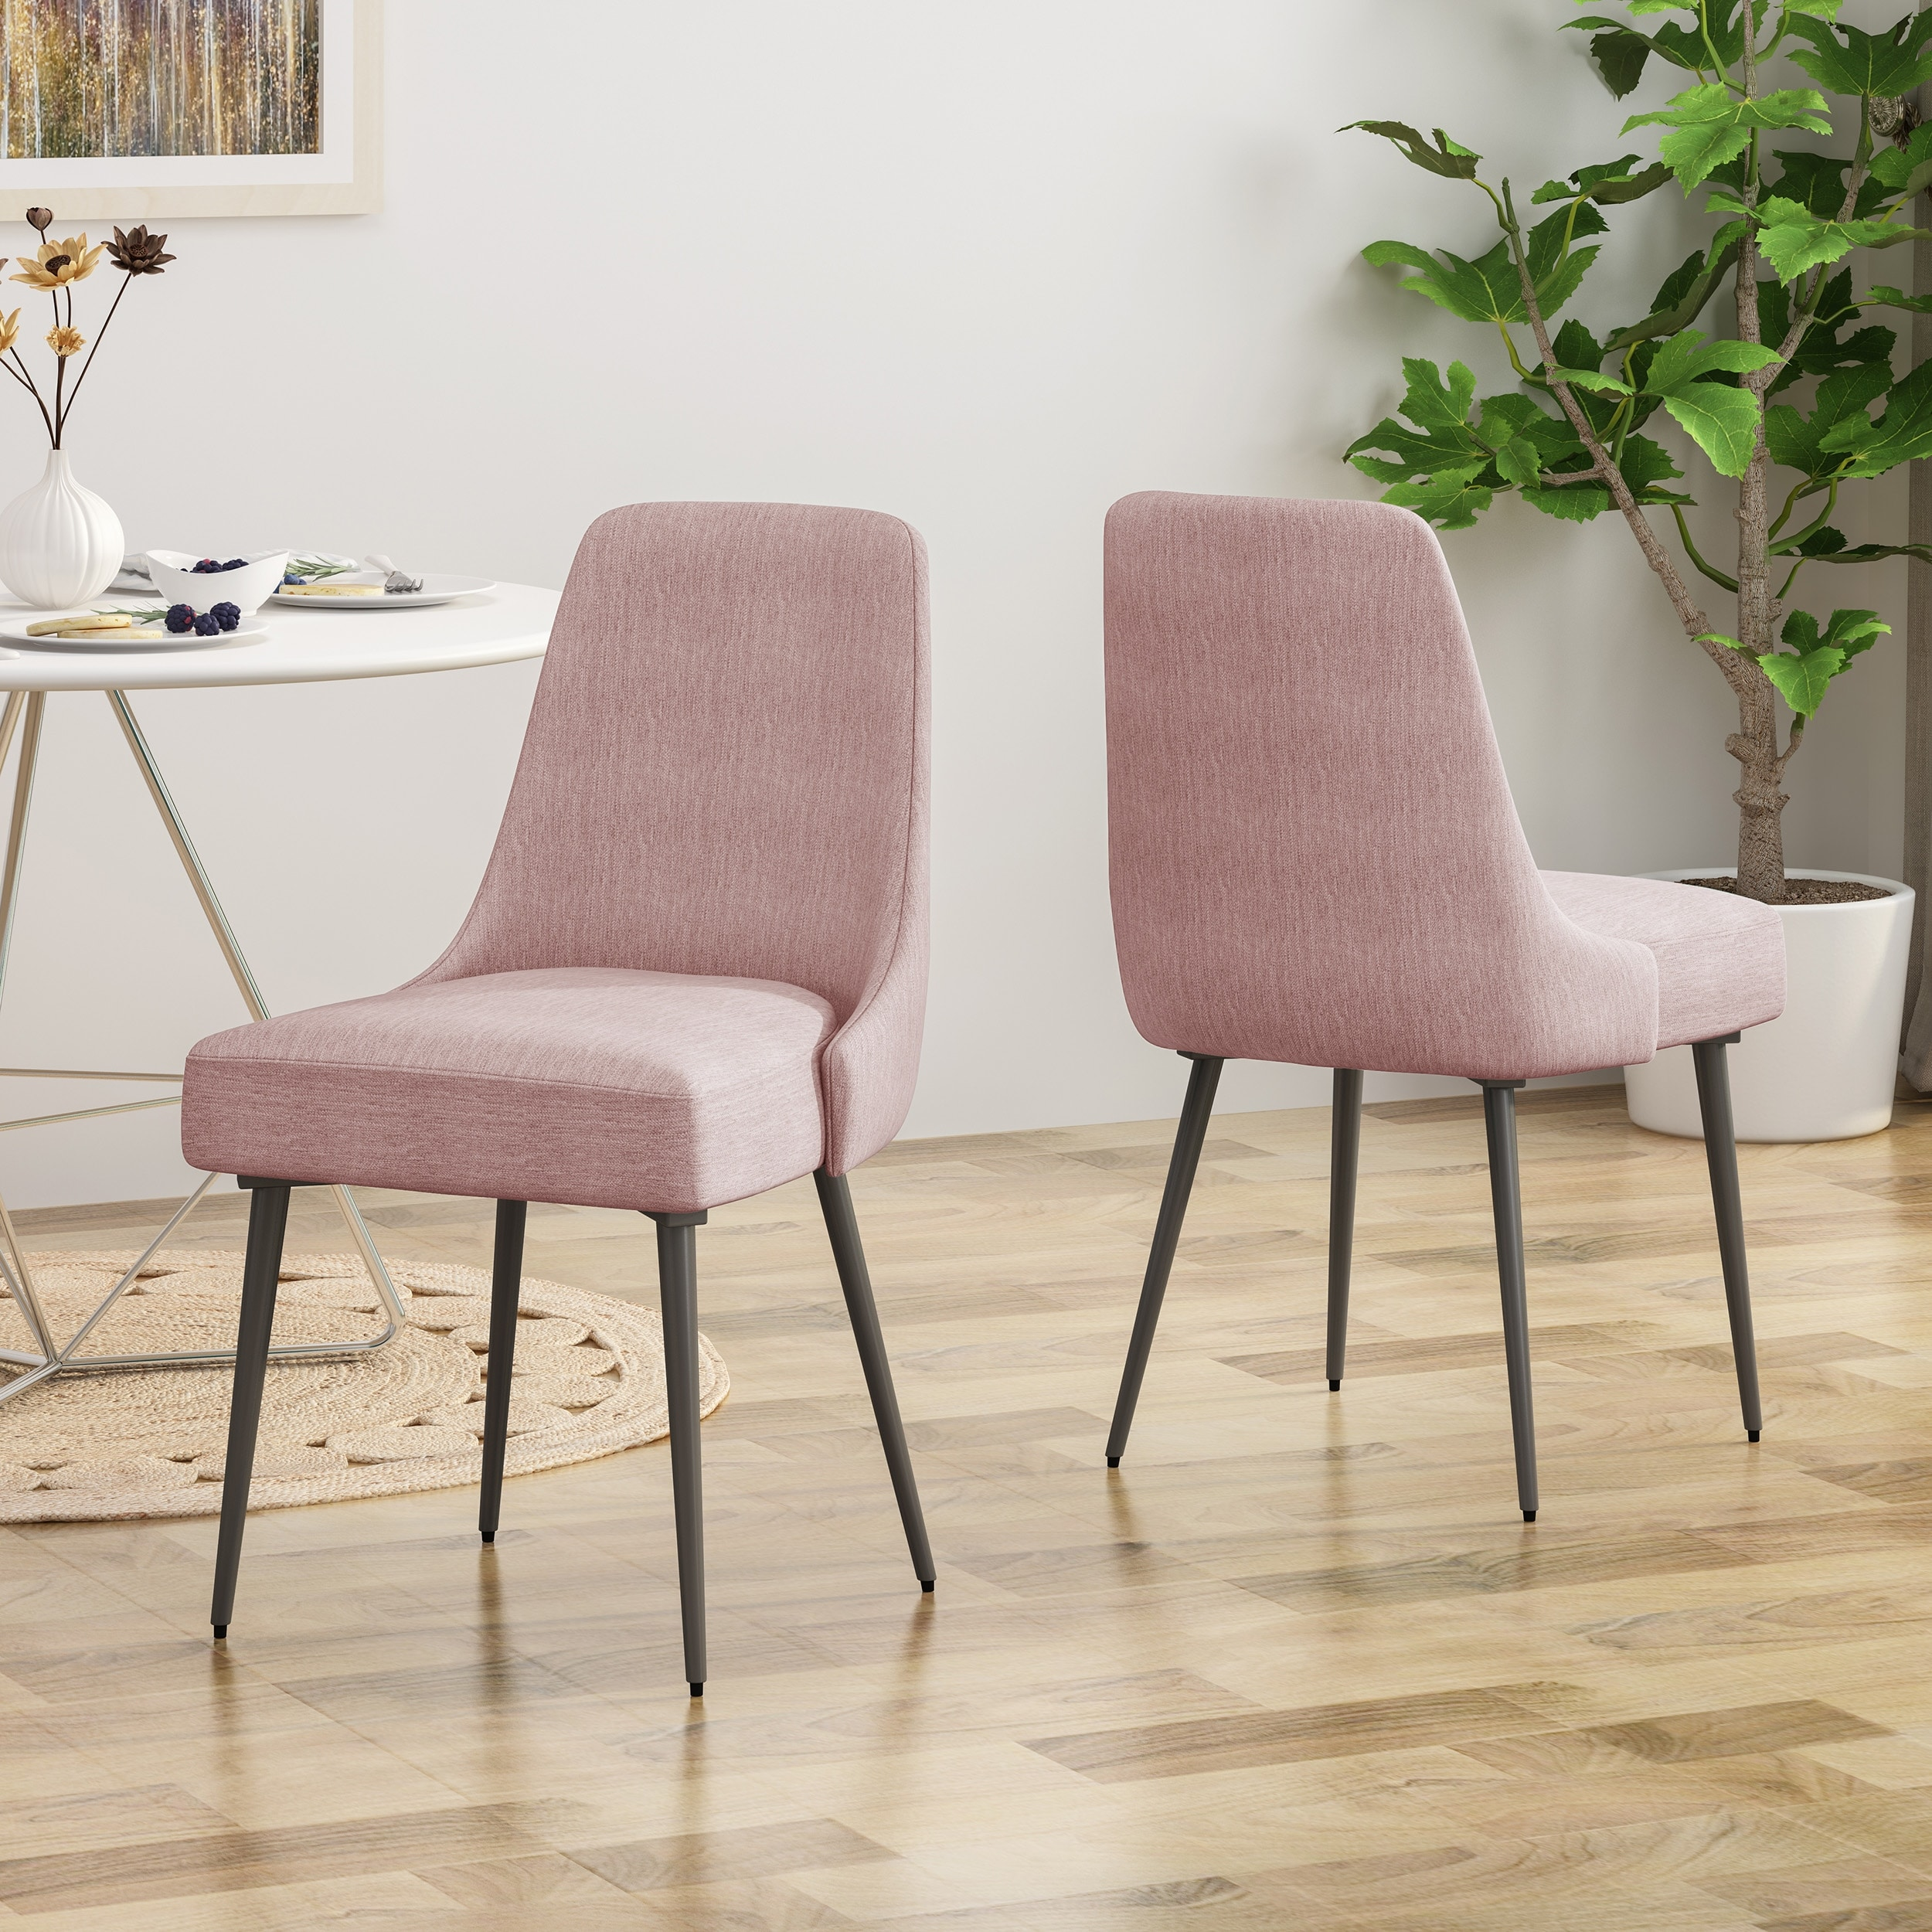 Alnoor Modern Armless Fabric Dining Chairs Set Of 2 By Christopher Knight Home N A On Sale Overstock 26474486 Light Blush Gun Metal